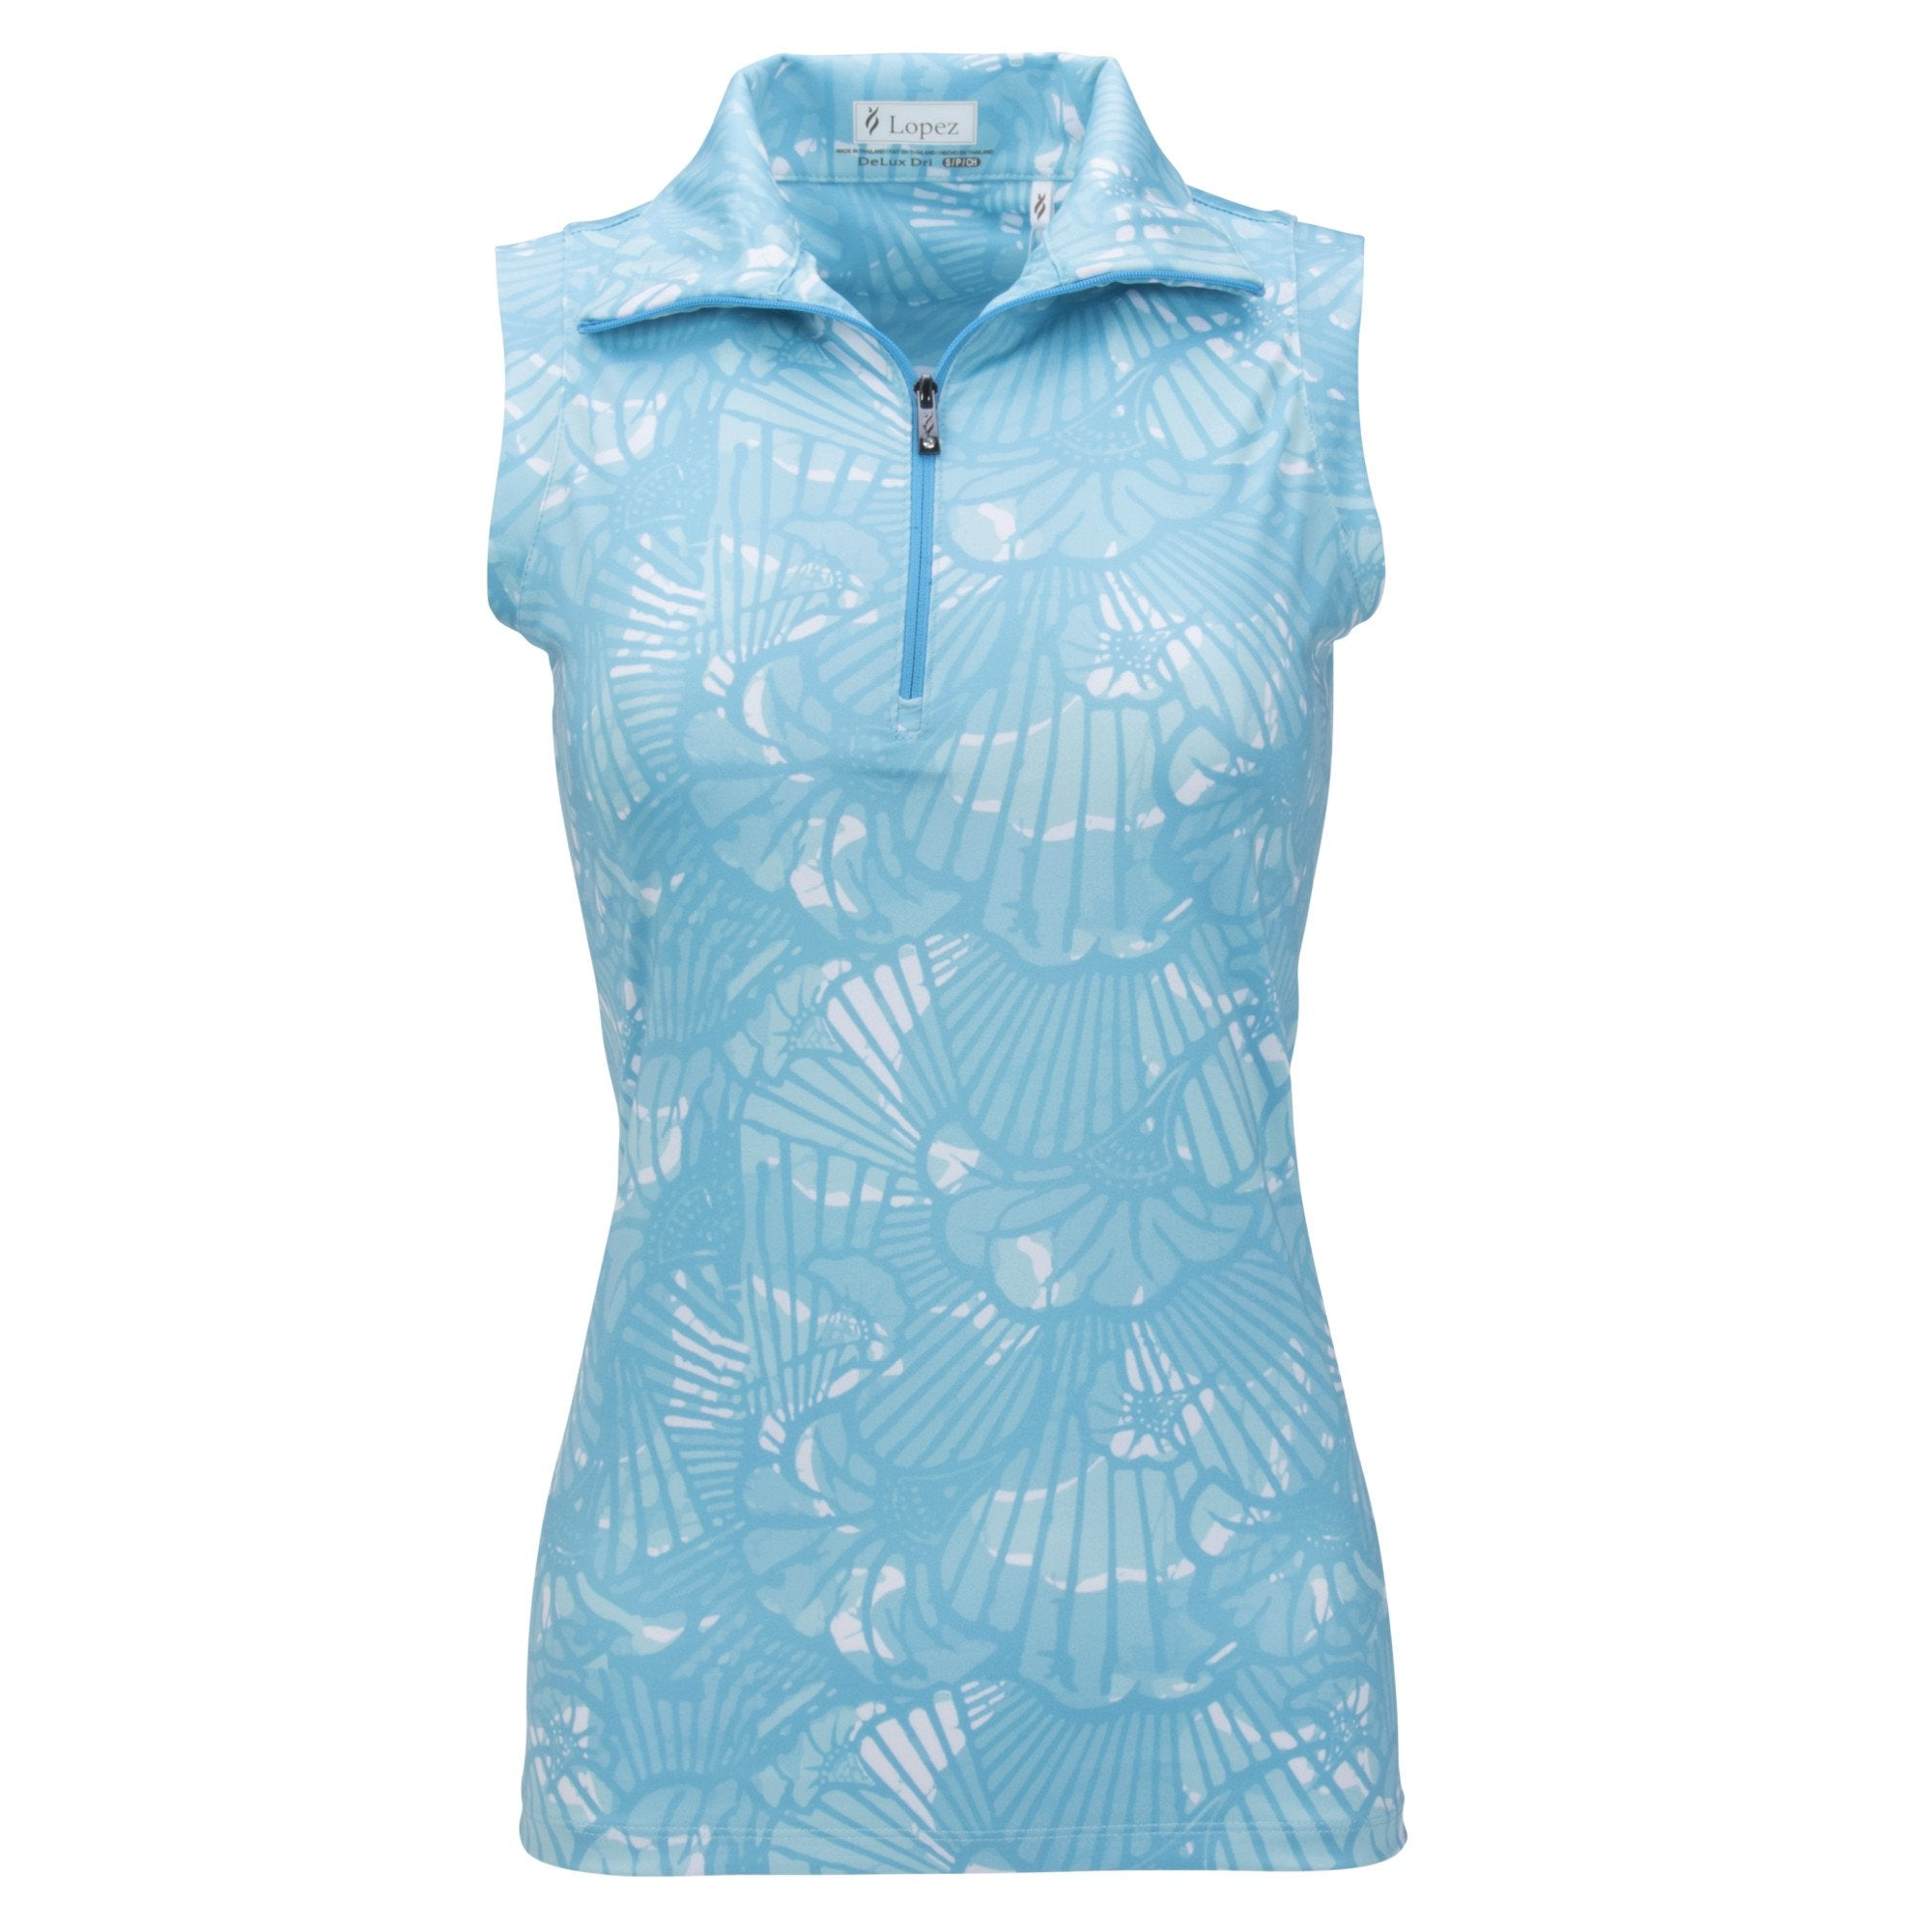 Nancy Lopez Wave Sleeveless Polo Plus Peacock Multi